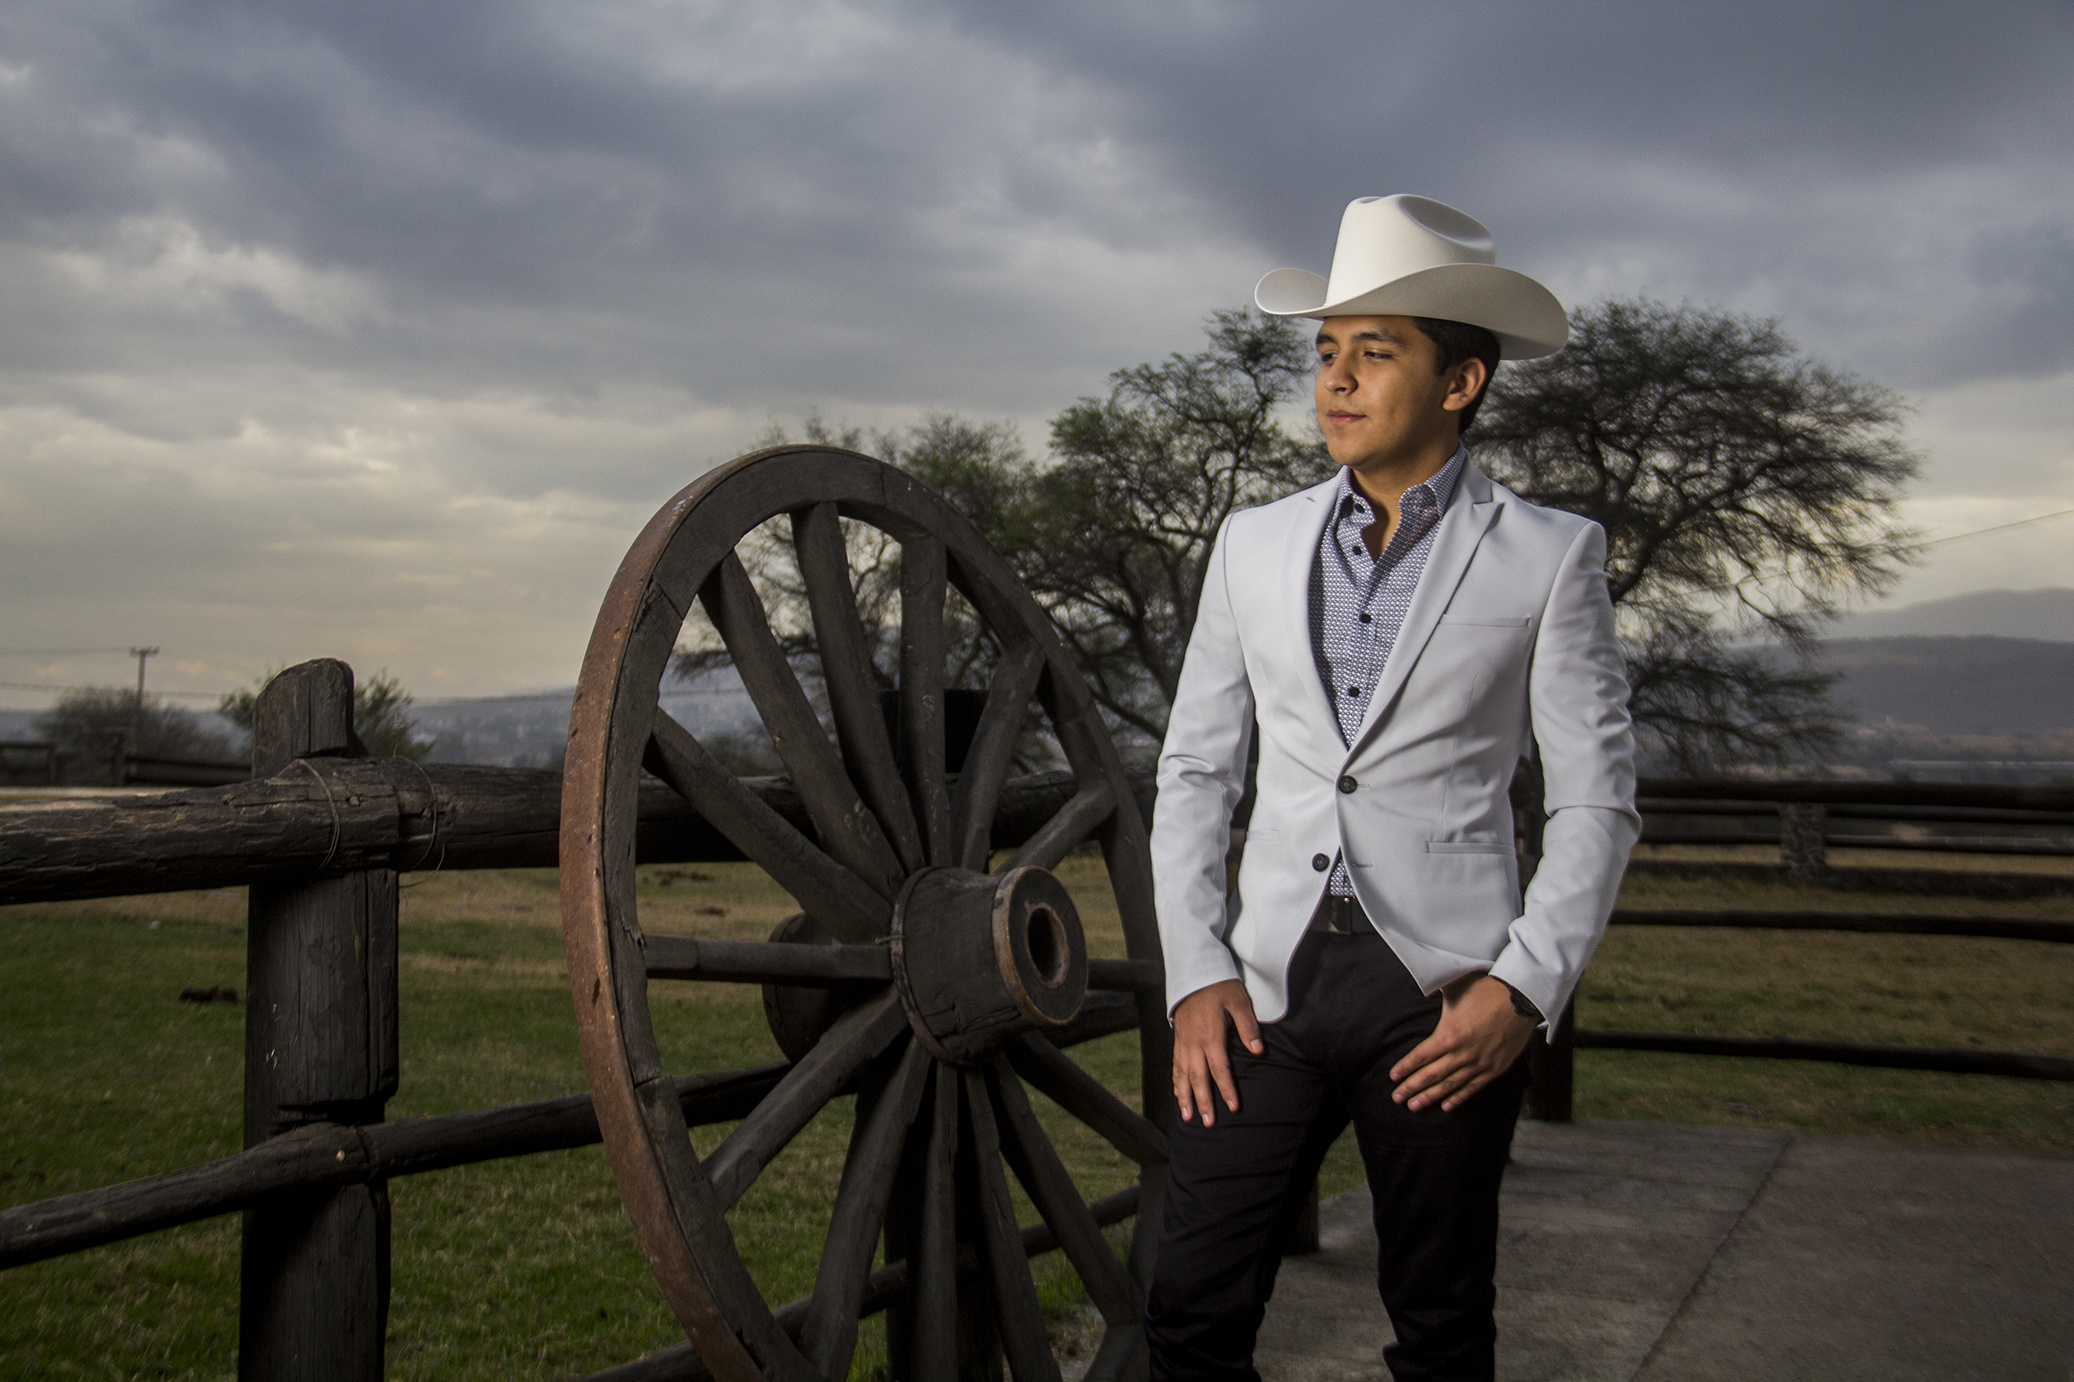 Christian Nodal JG Music